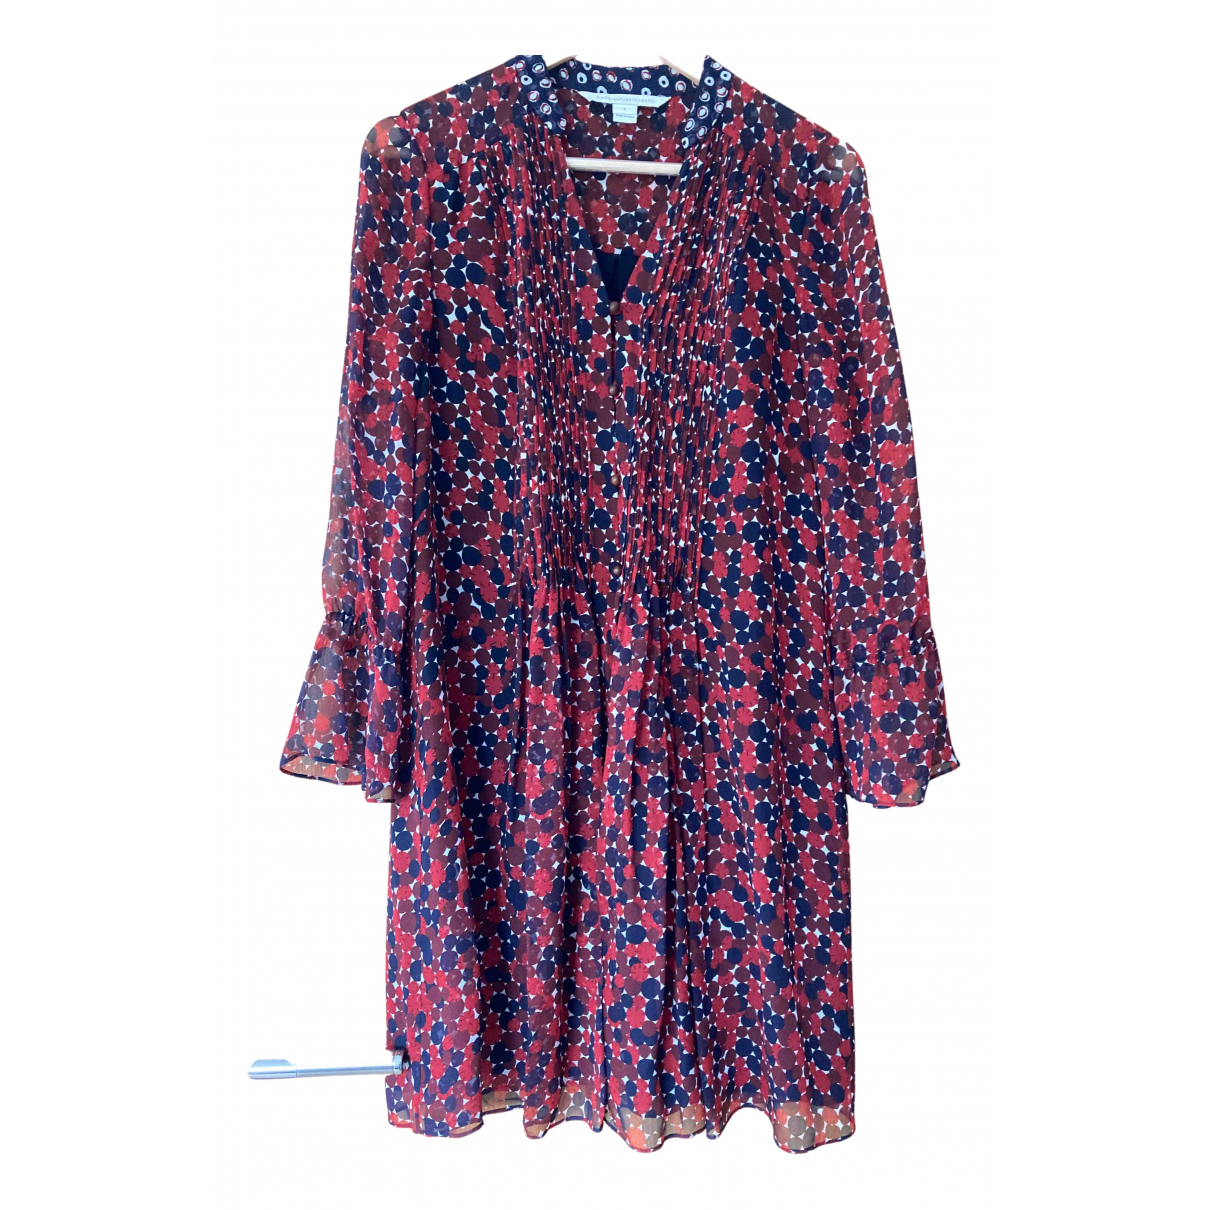 Diane Von Furstenberg N Multicolour Silk dress for Women 4 US